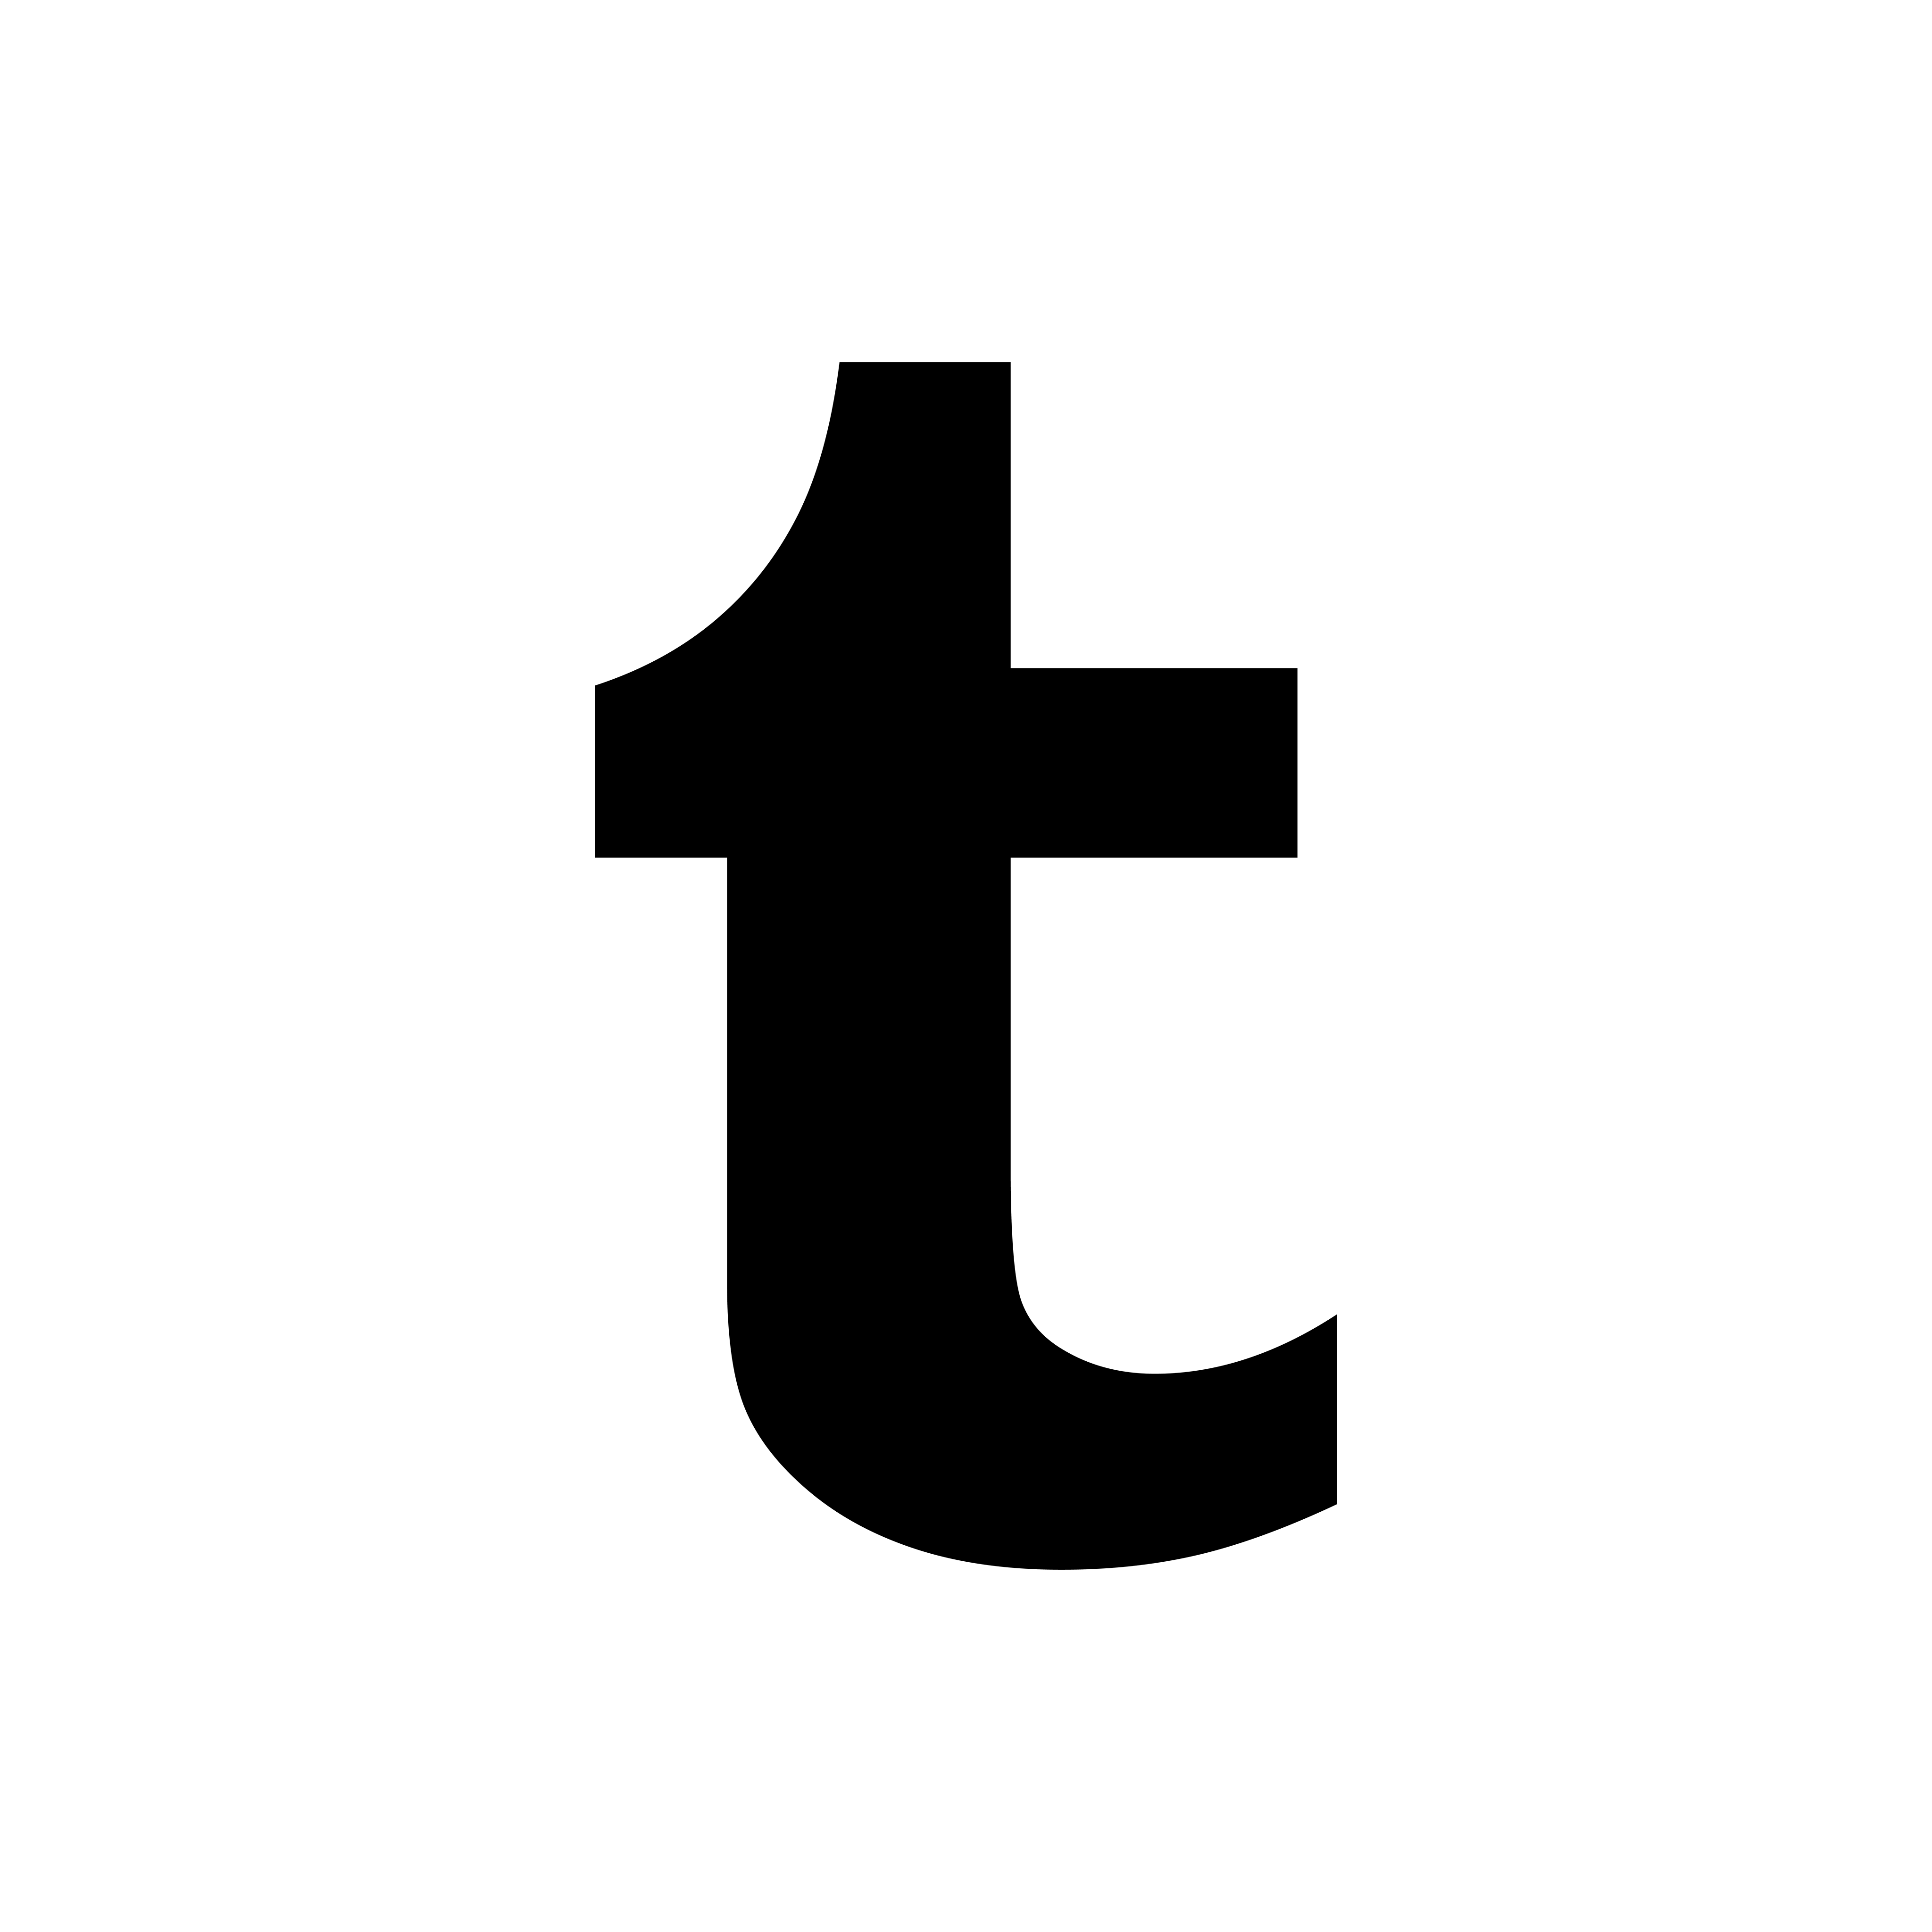 Tumblr png black. Index of wp content